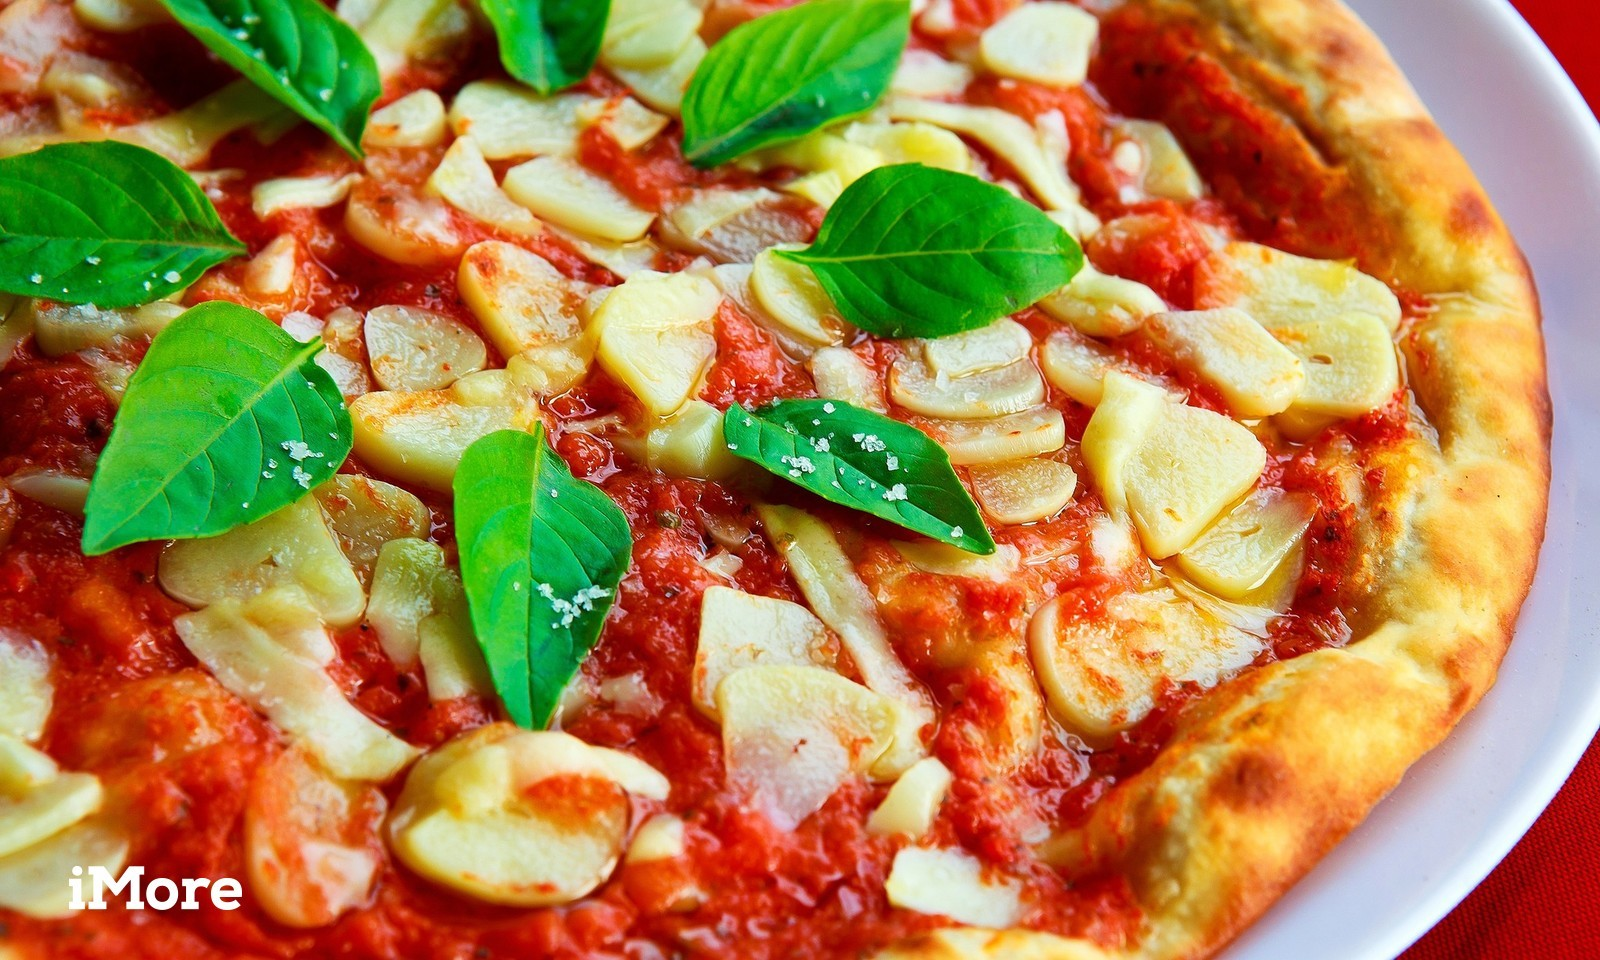 A pizza sits on a plate.